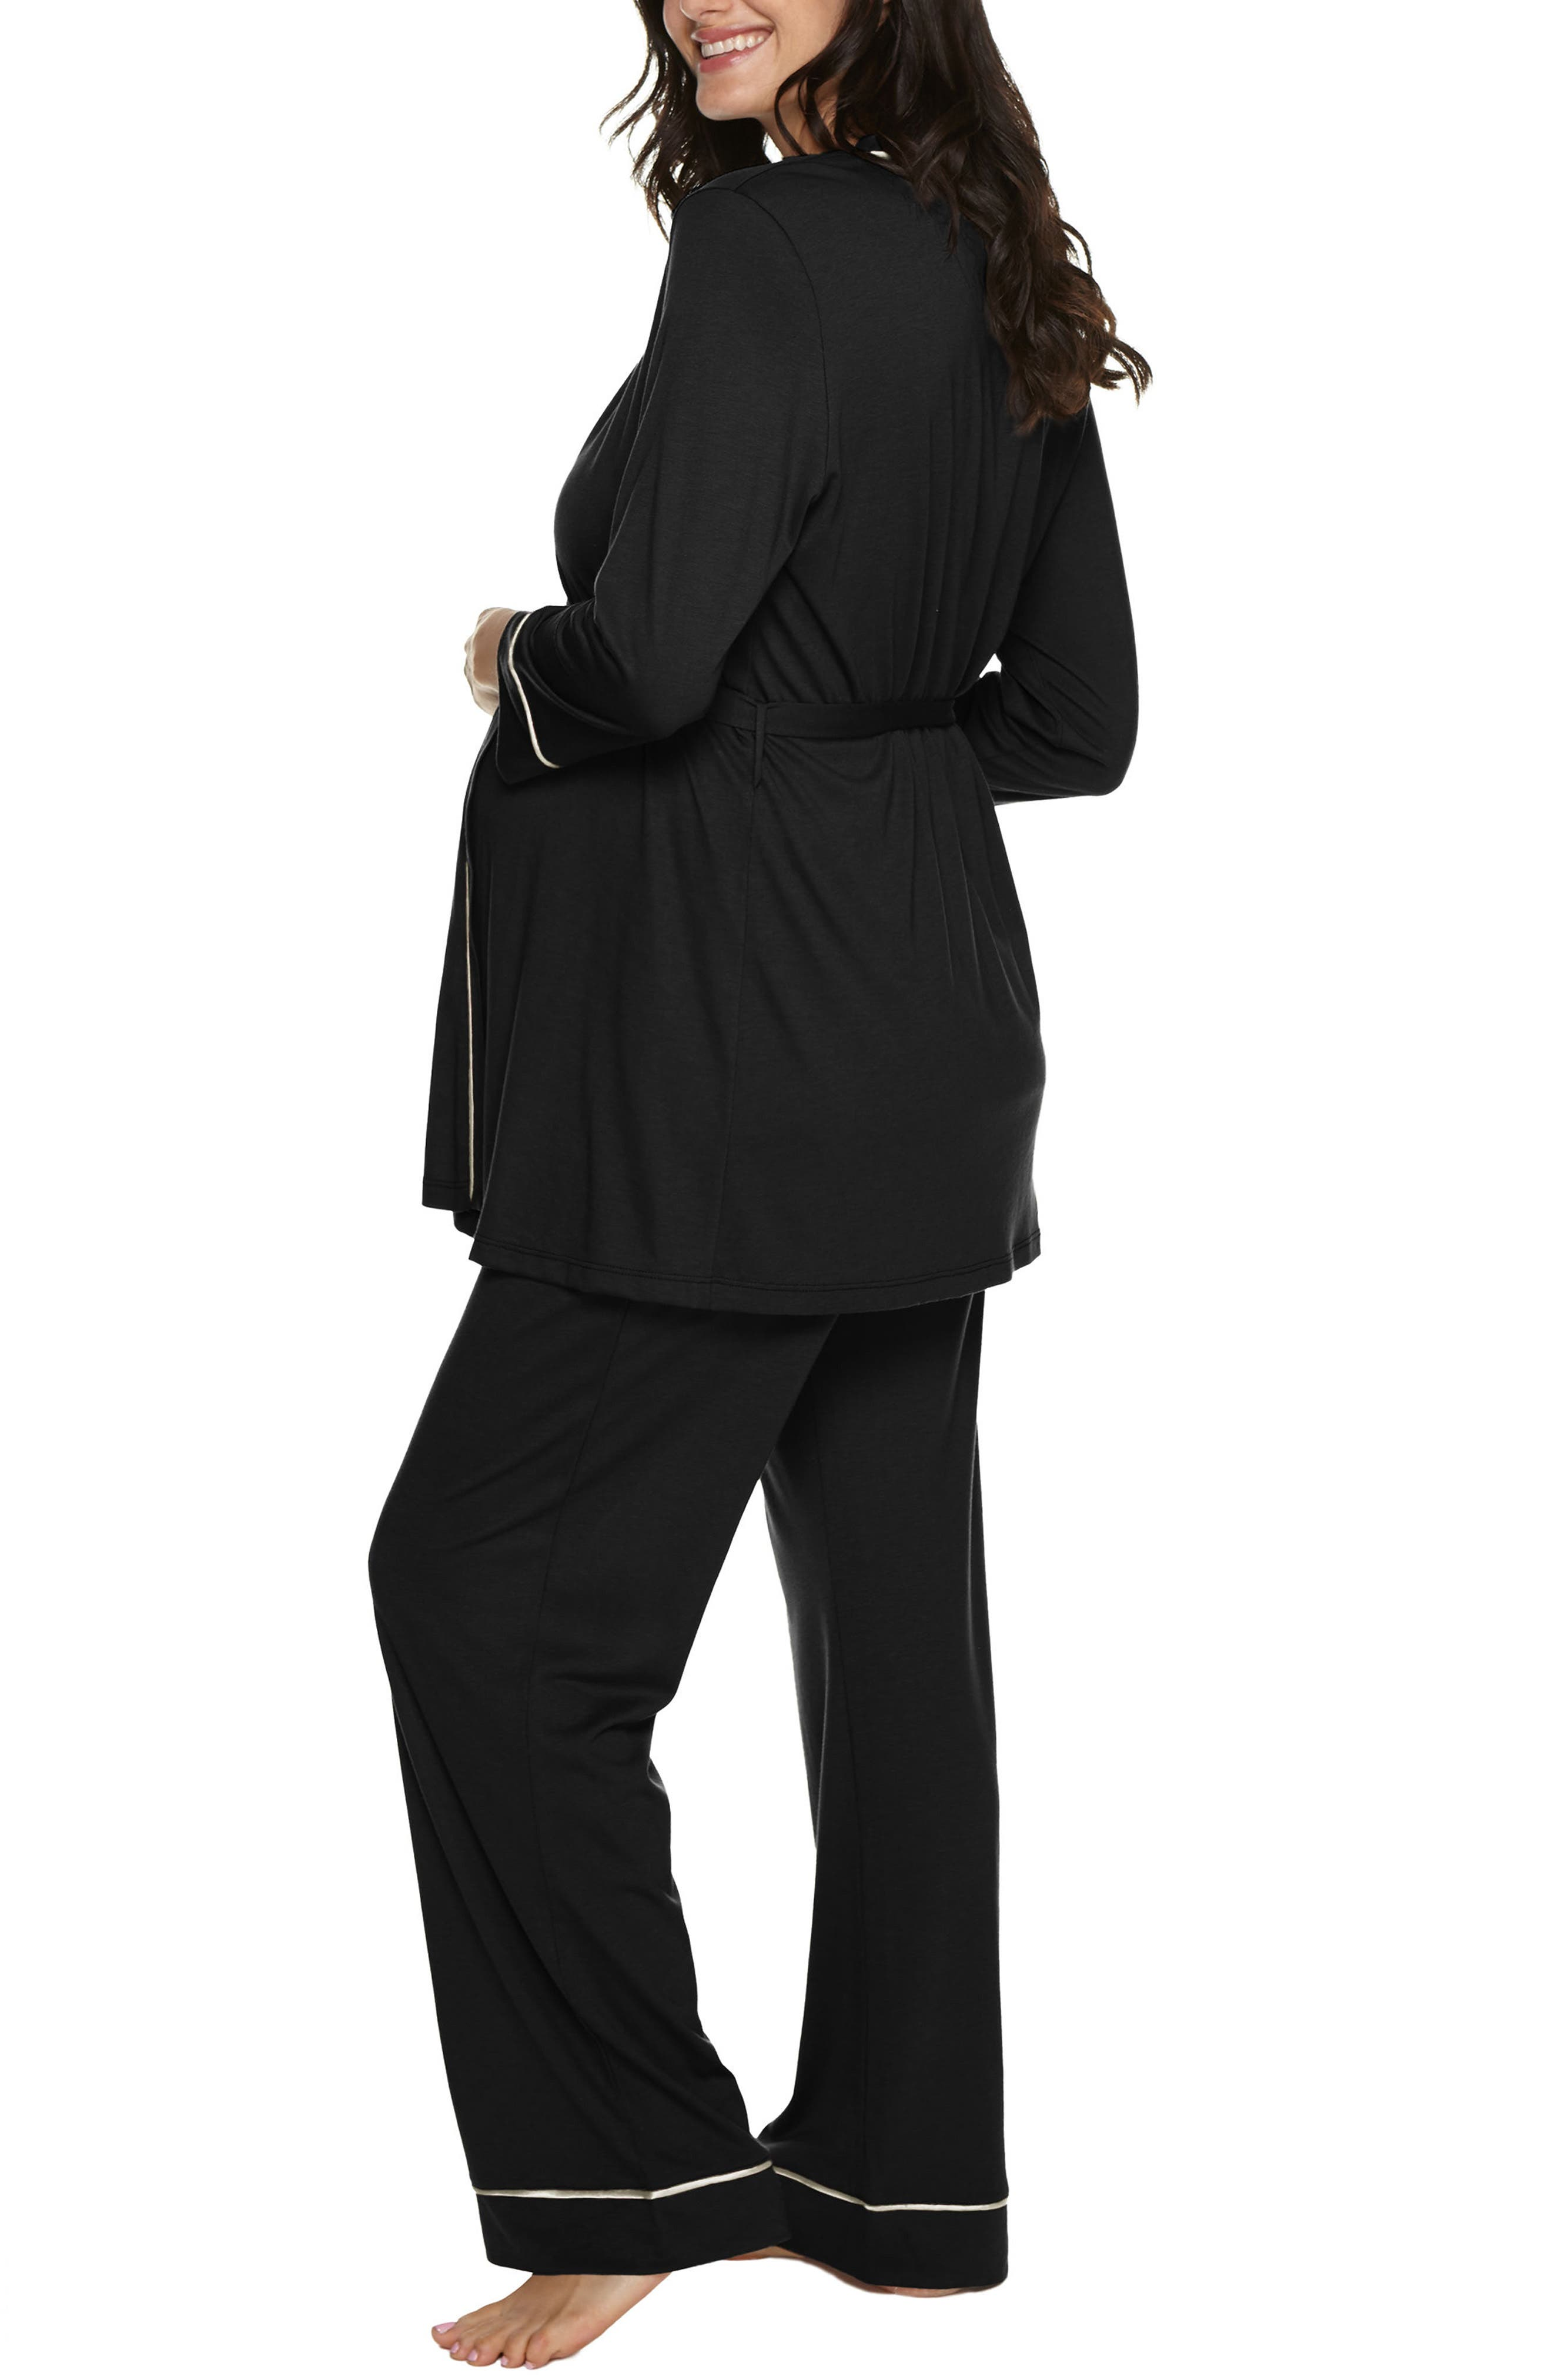 Bella 3-Piece Maternity Pajamas,                             Alternate thumbnail 3, color,                             Black/ Ivory